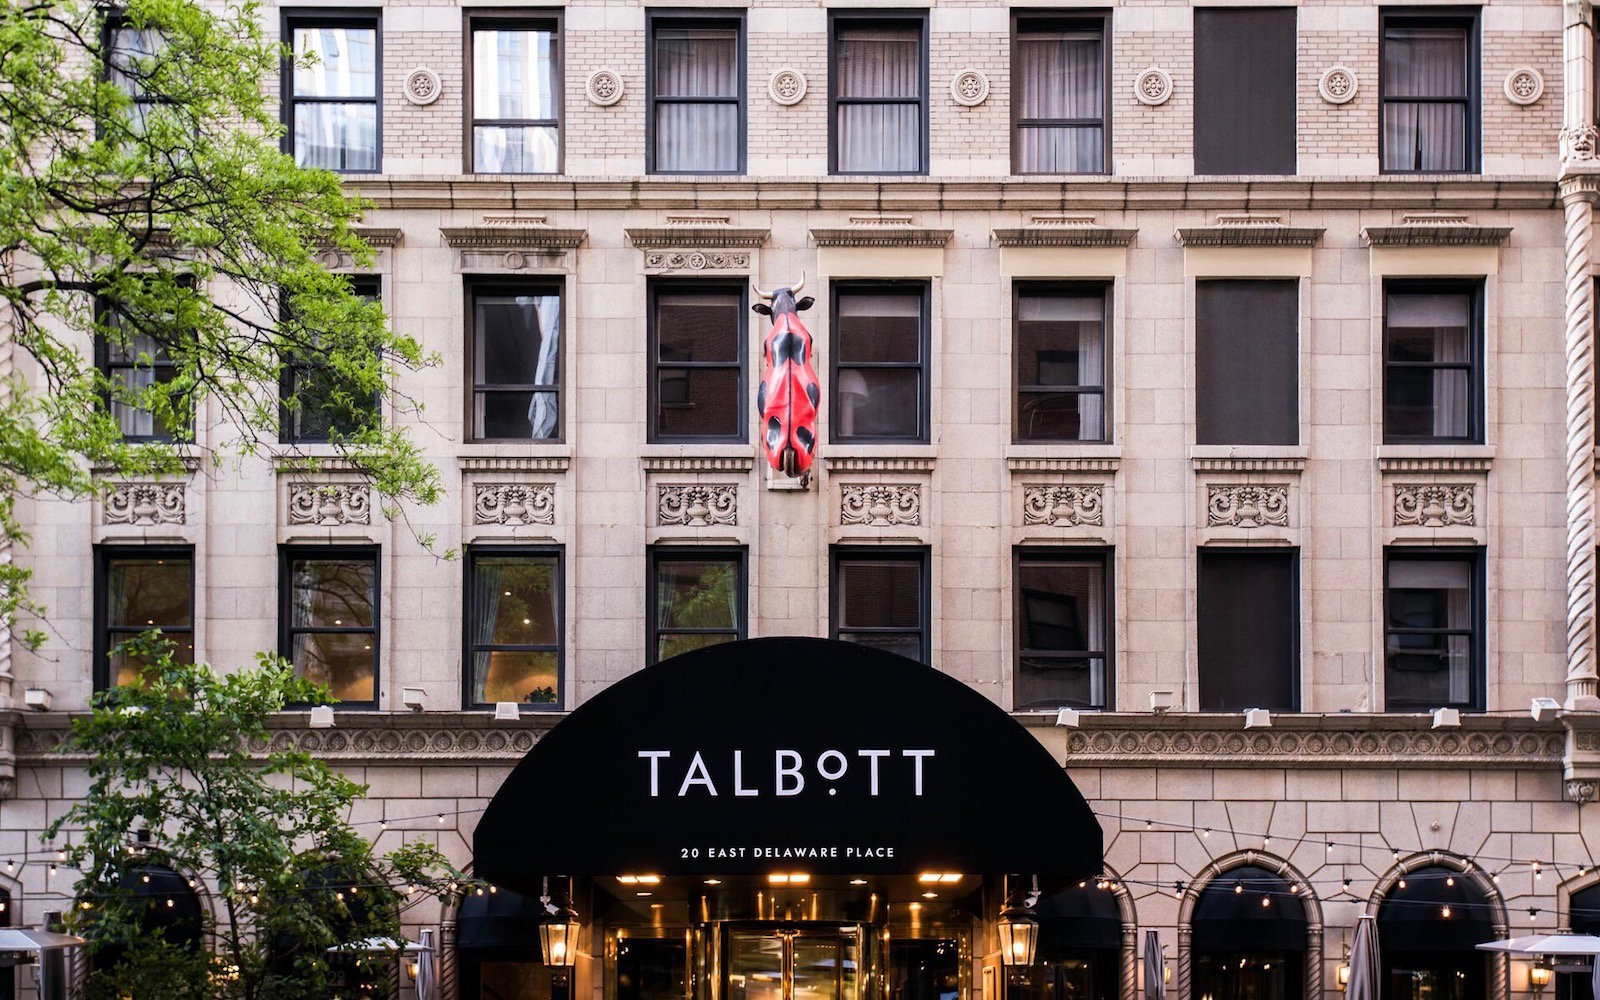 The Talbott Hotel Chicago